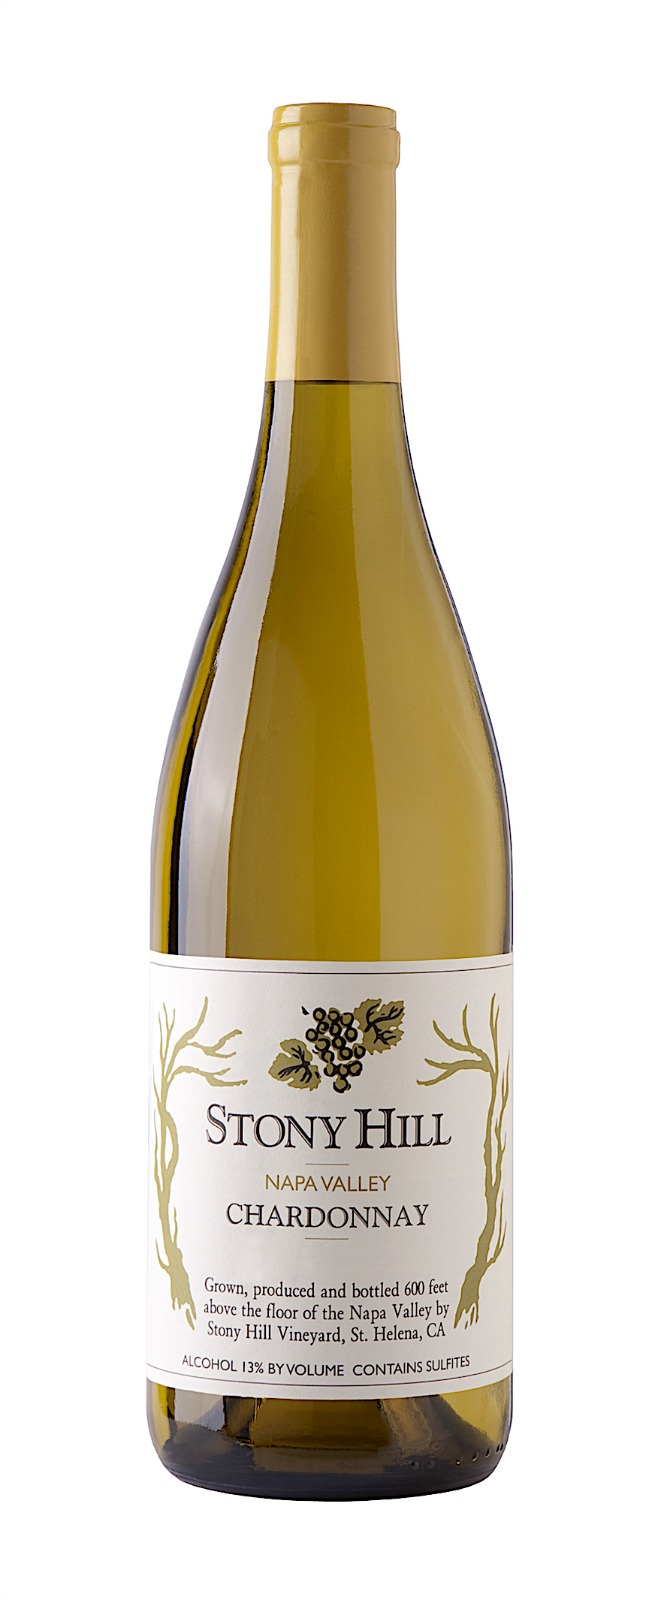 Stony Hill Vineyard Chardonnay Napa Valley 2013,  () from The BPW - Merchants of rare and fine wines.